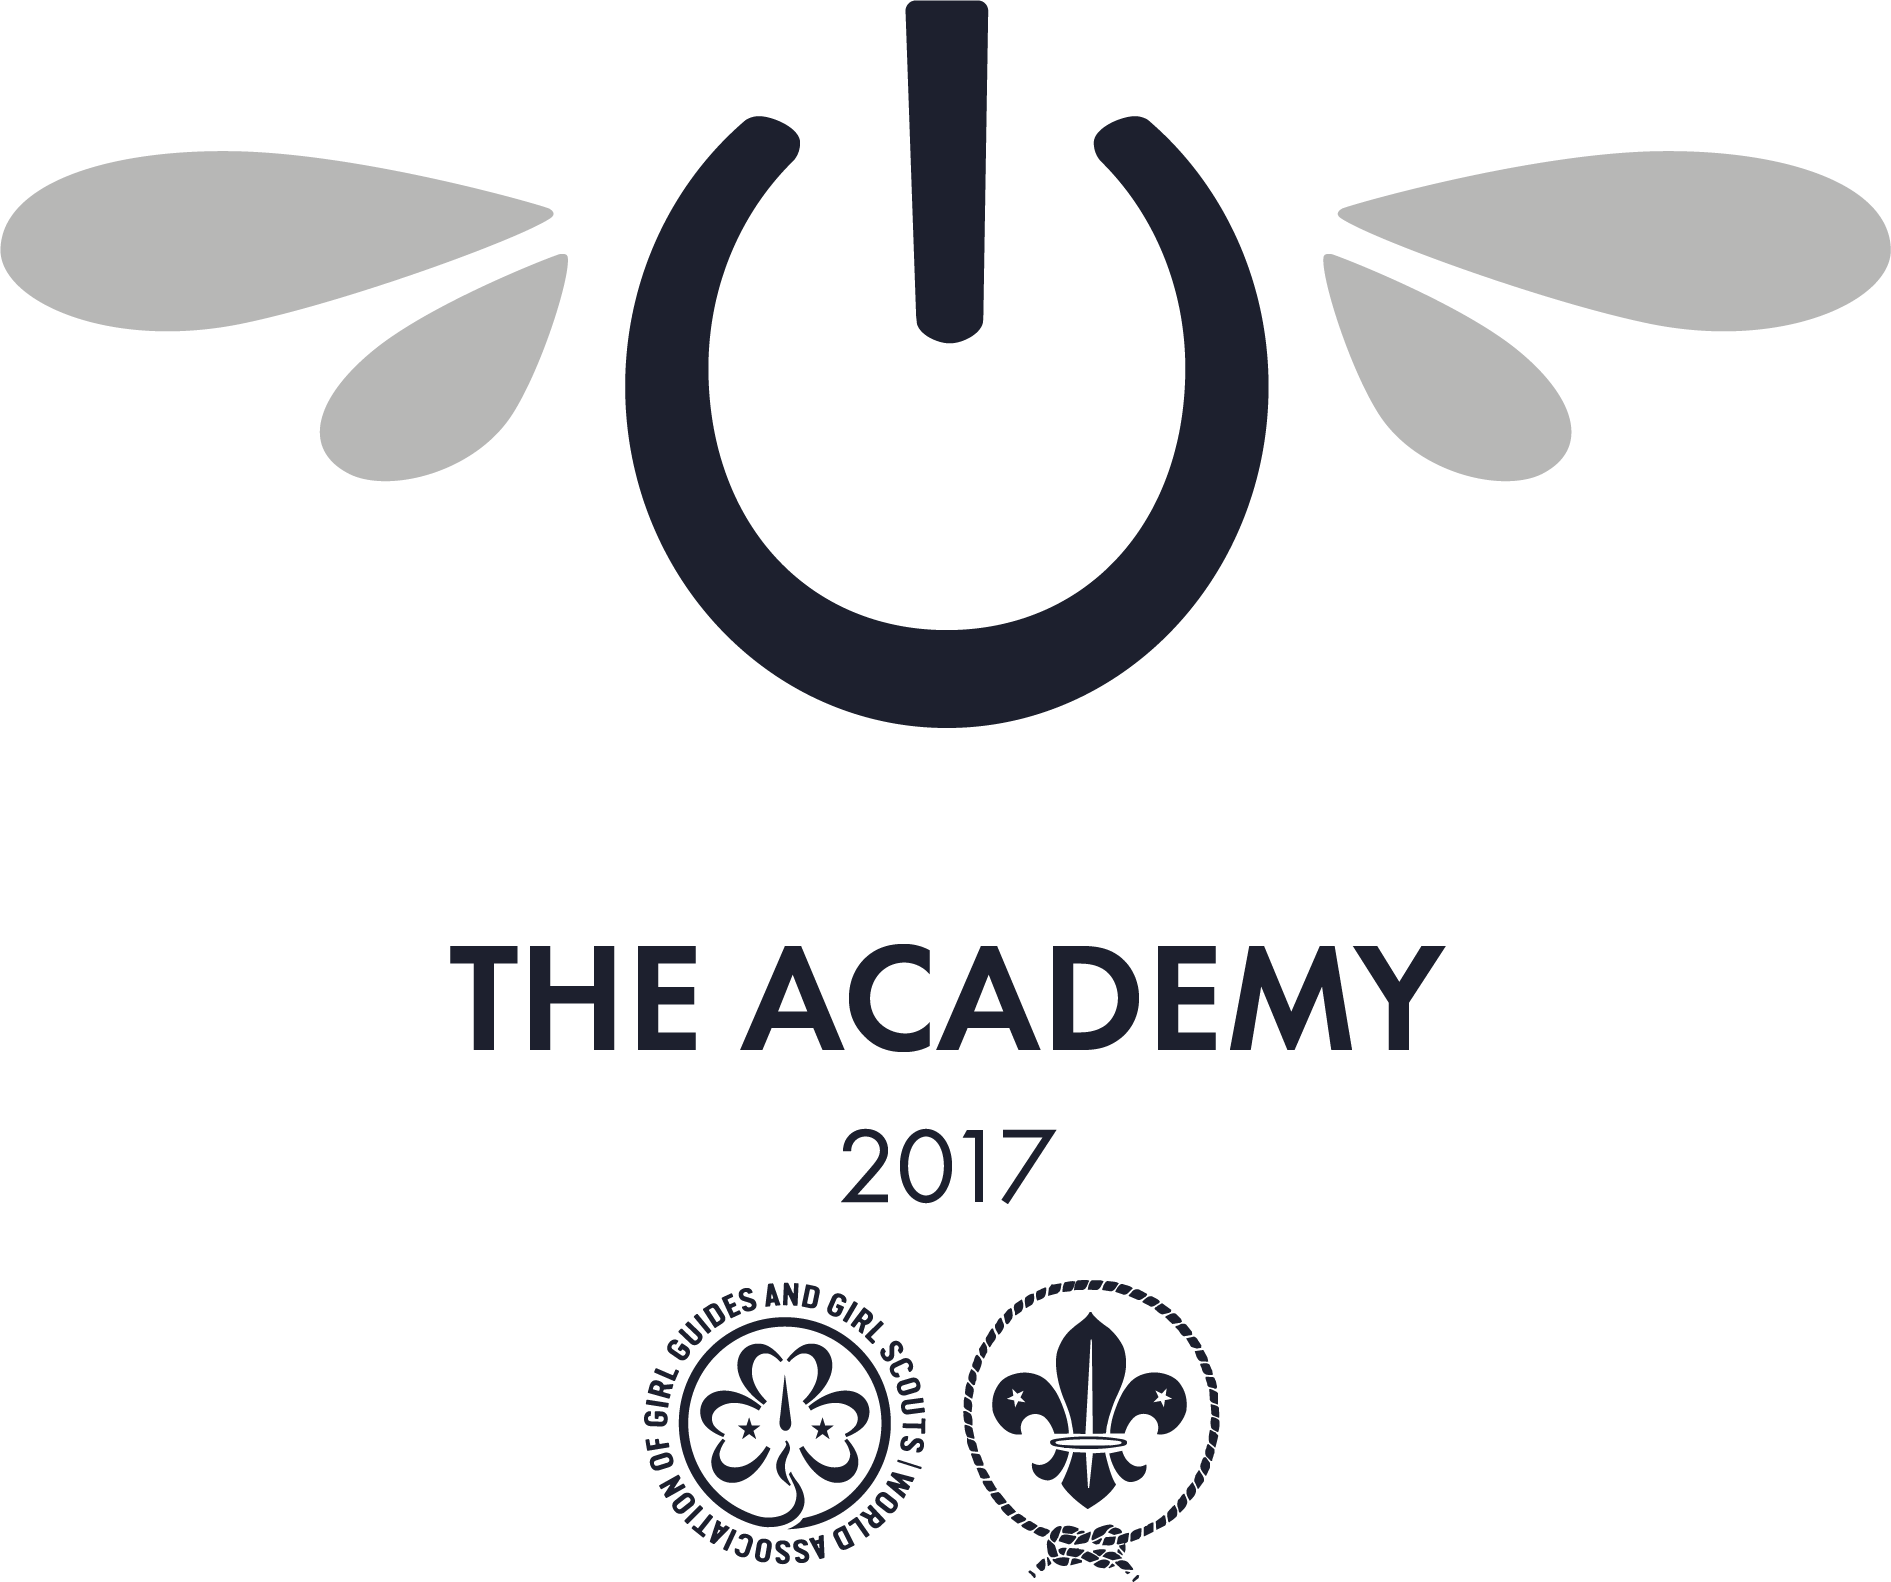 Logo The Academy 2017